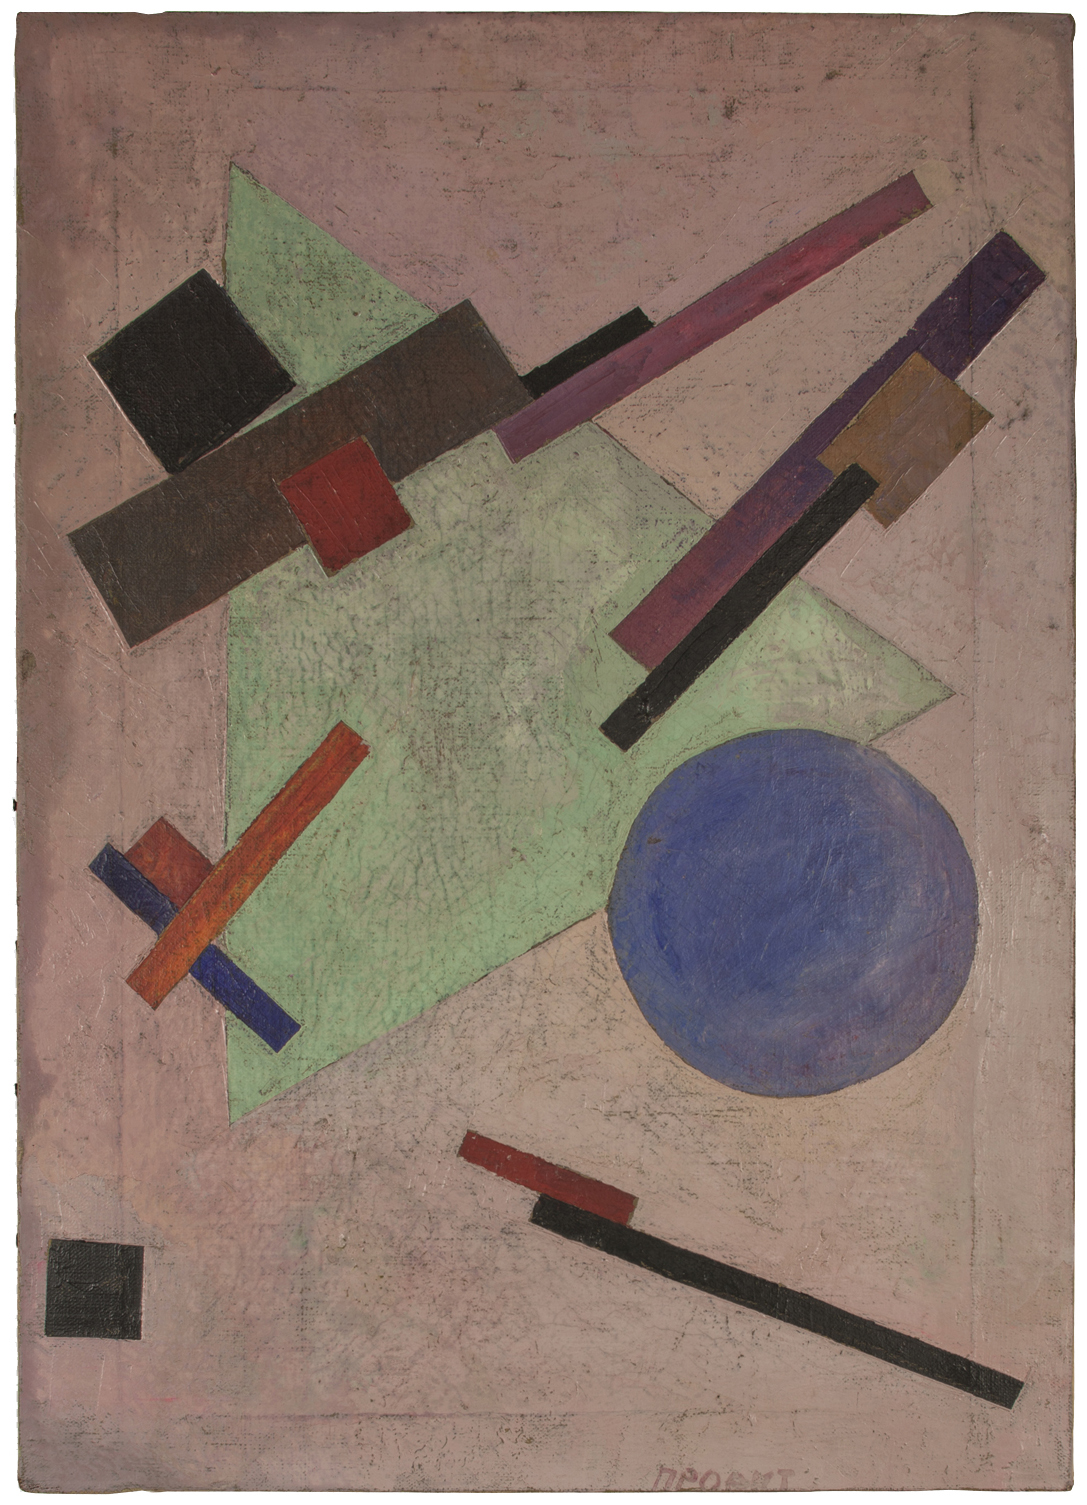 """Unattributed. Unsigned. In the style of Kasimir Malevich.Text in Russian, lower right front corner, translates to """"Project"""".    Oil on canvas. 50 x 36 cm."""